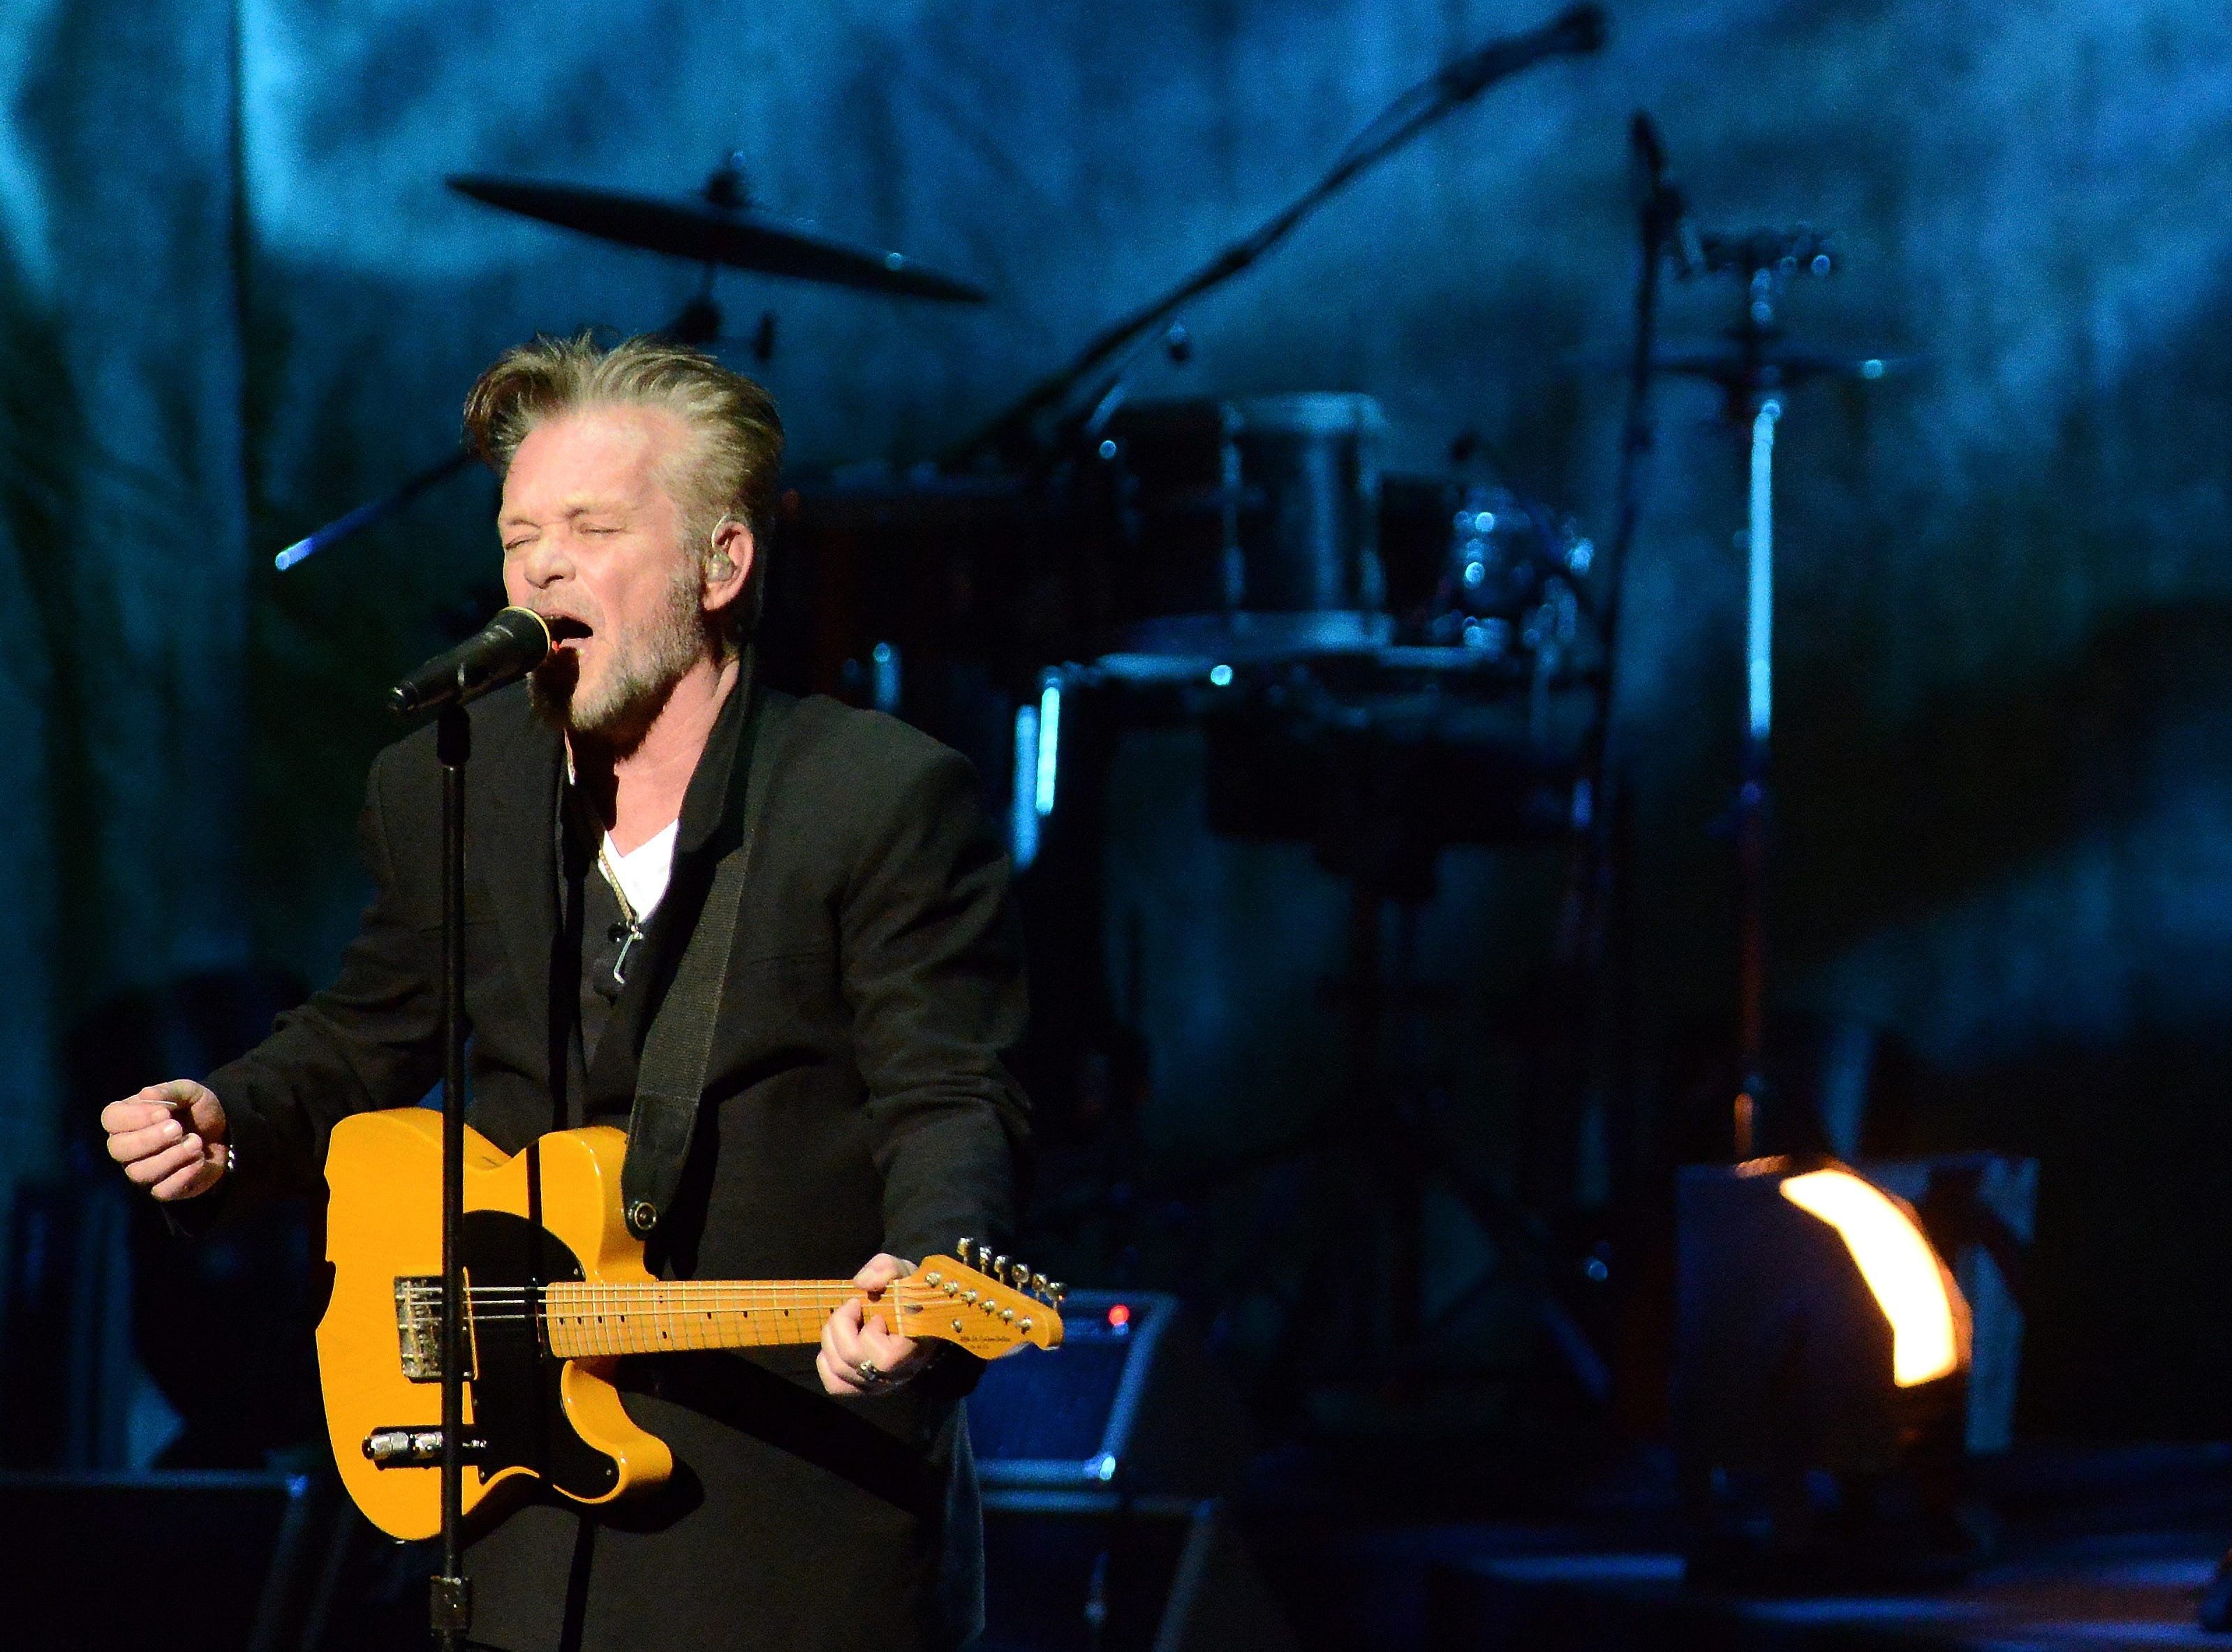 John Mellencamp performs on Feb. 9, 2015, at the Weidner Center. He'll return to that stage in 2019 for a concert on April 13.